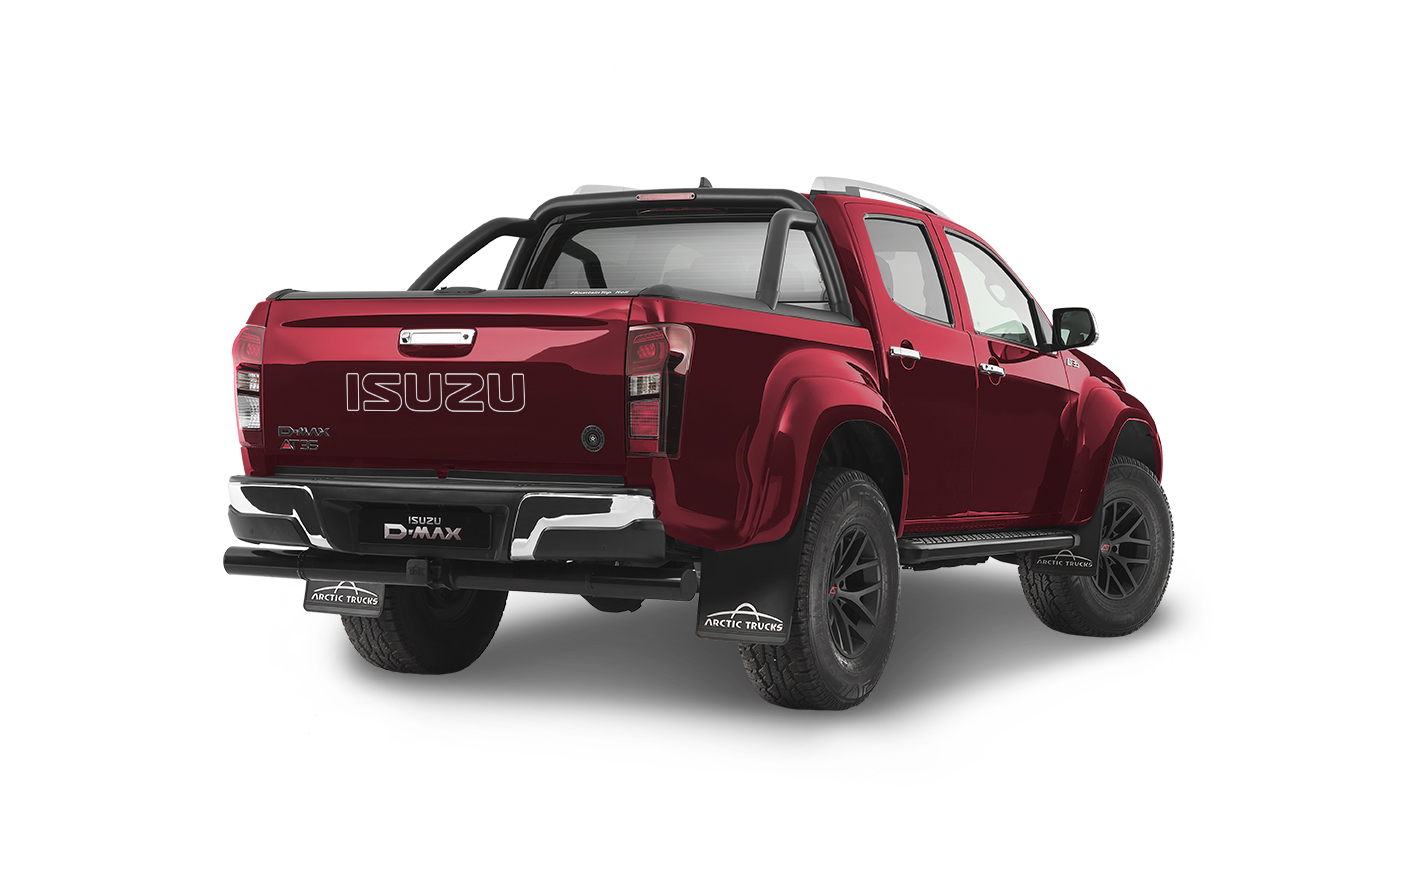 Rear view of the Isuzu D-Max Arctic AT35 in red